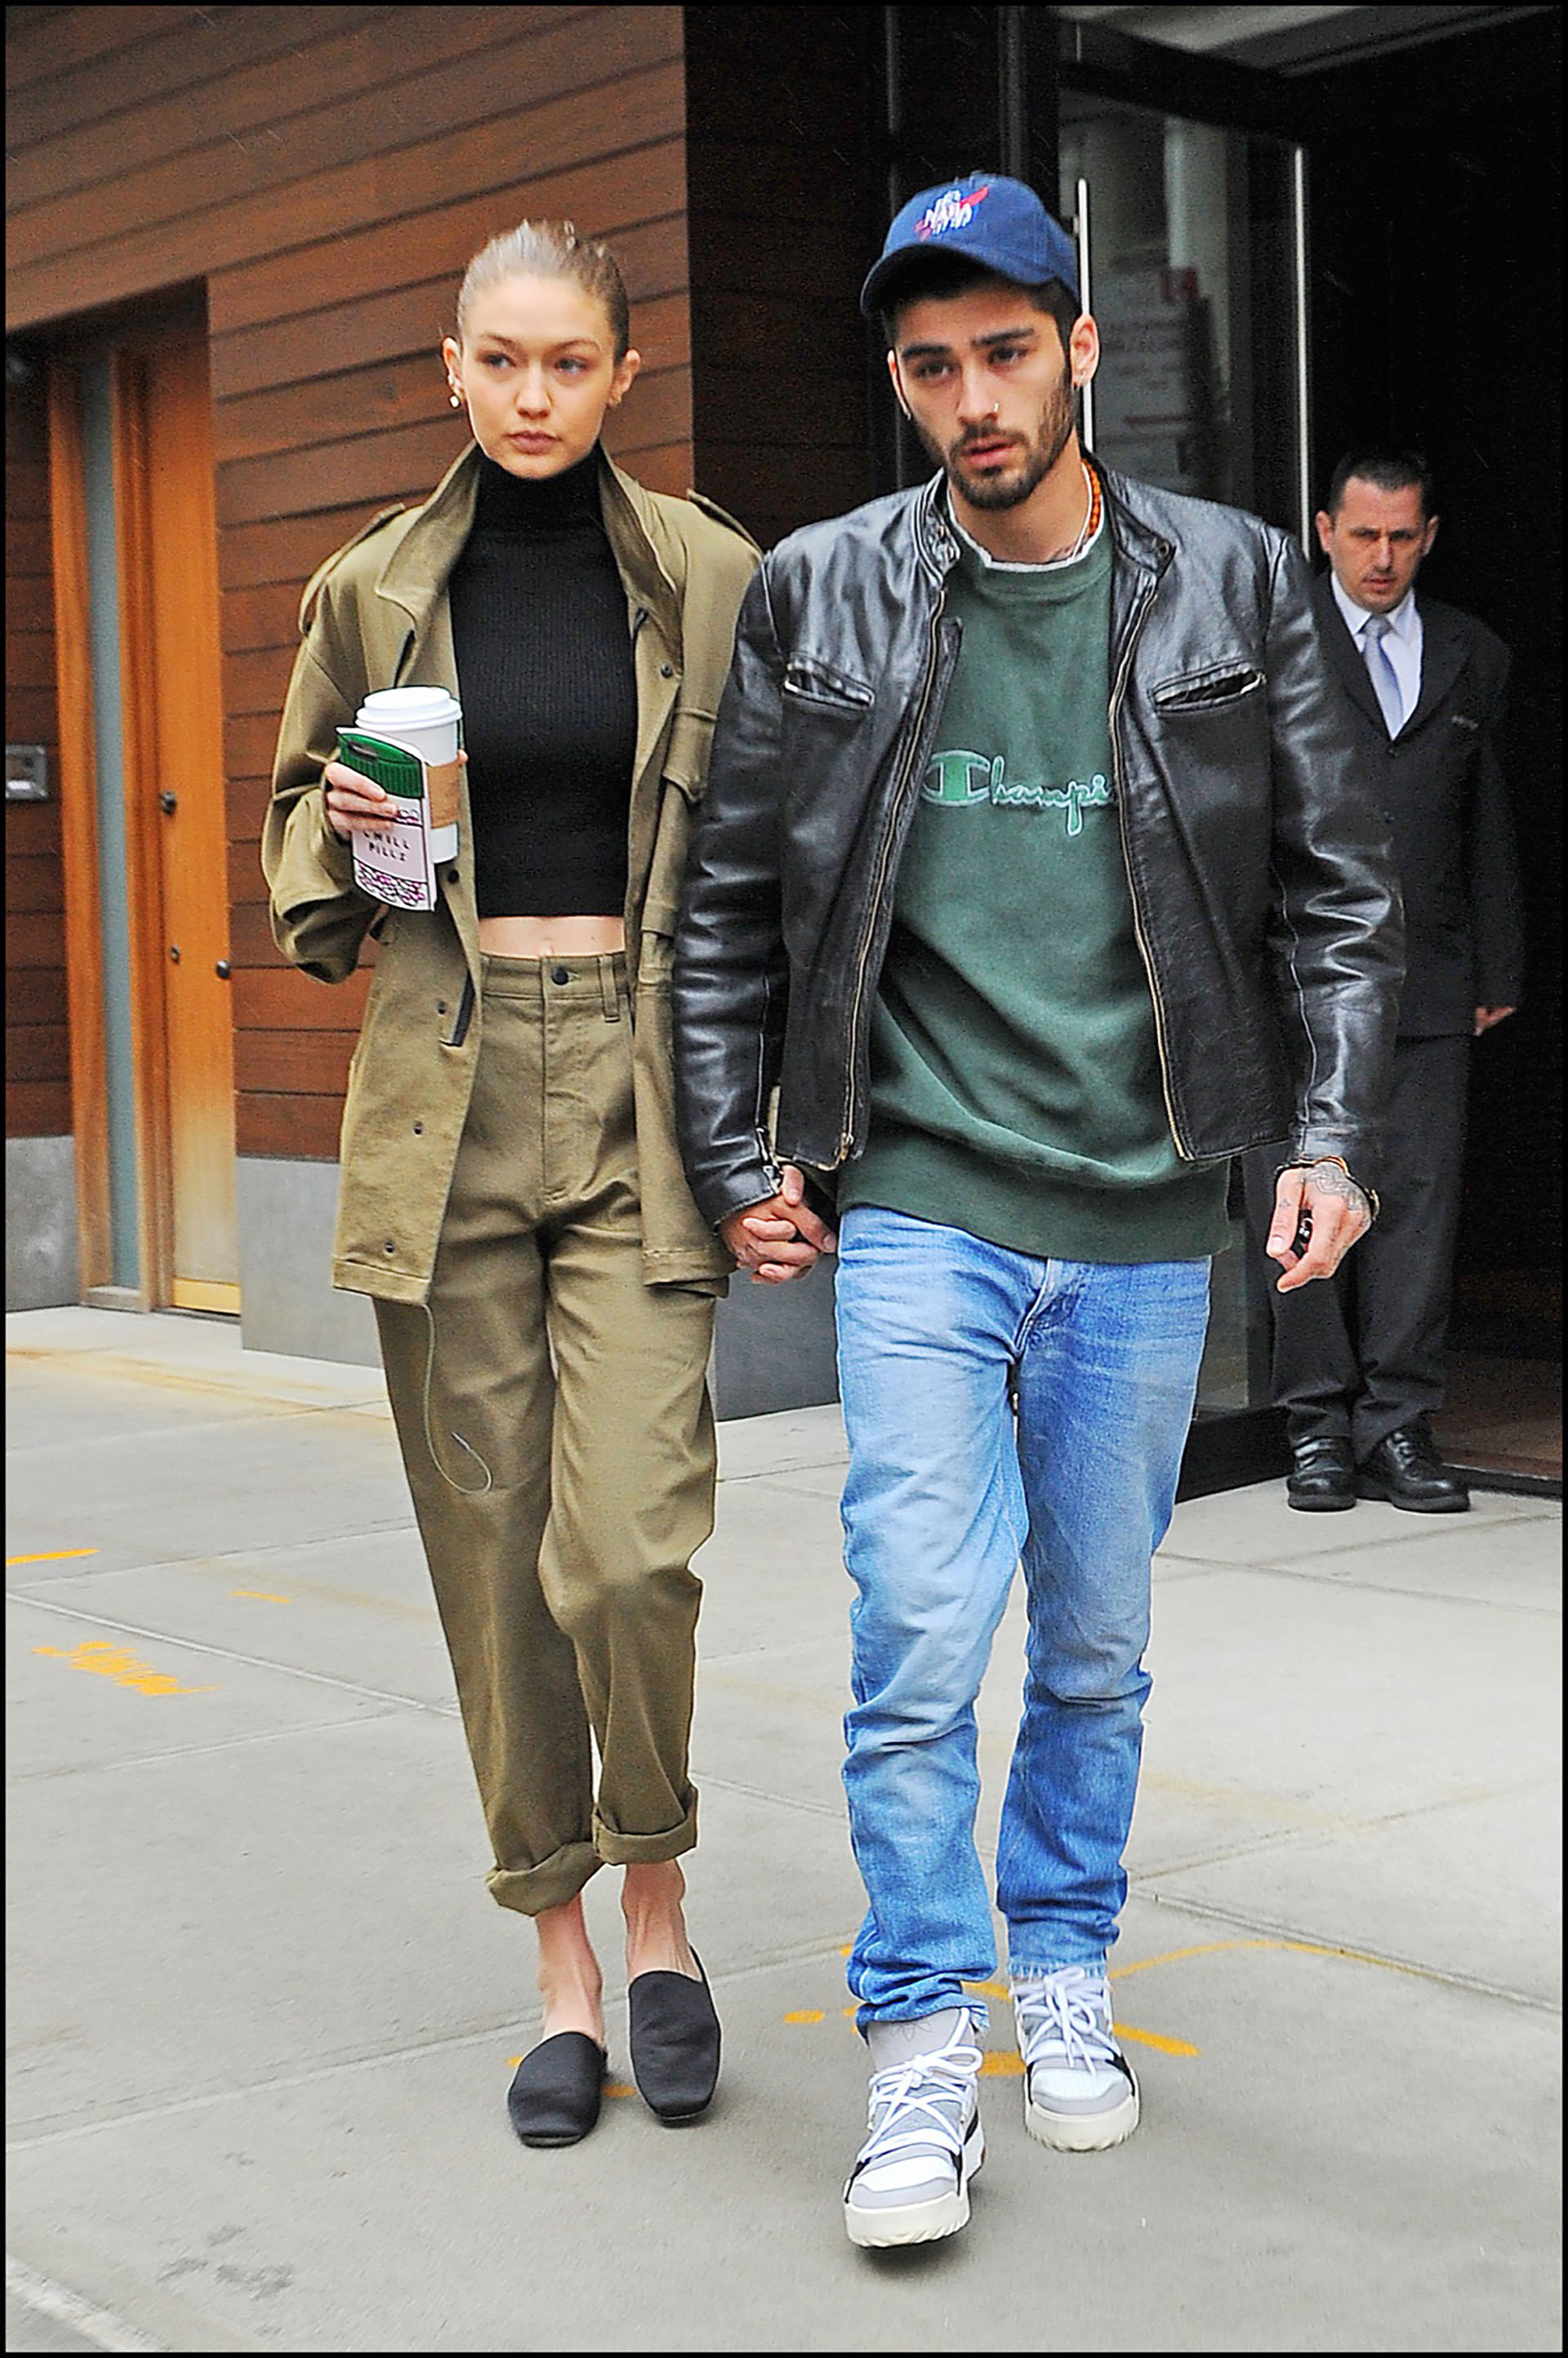 MANHATTAN, NY - APRIL 26, 2017: Gigi Hadid and Zayn Malik hold hands as they leave there Soho apartment on APRIL 26, 2017 in New York